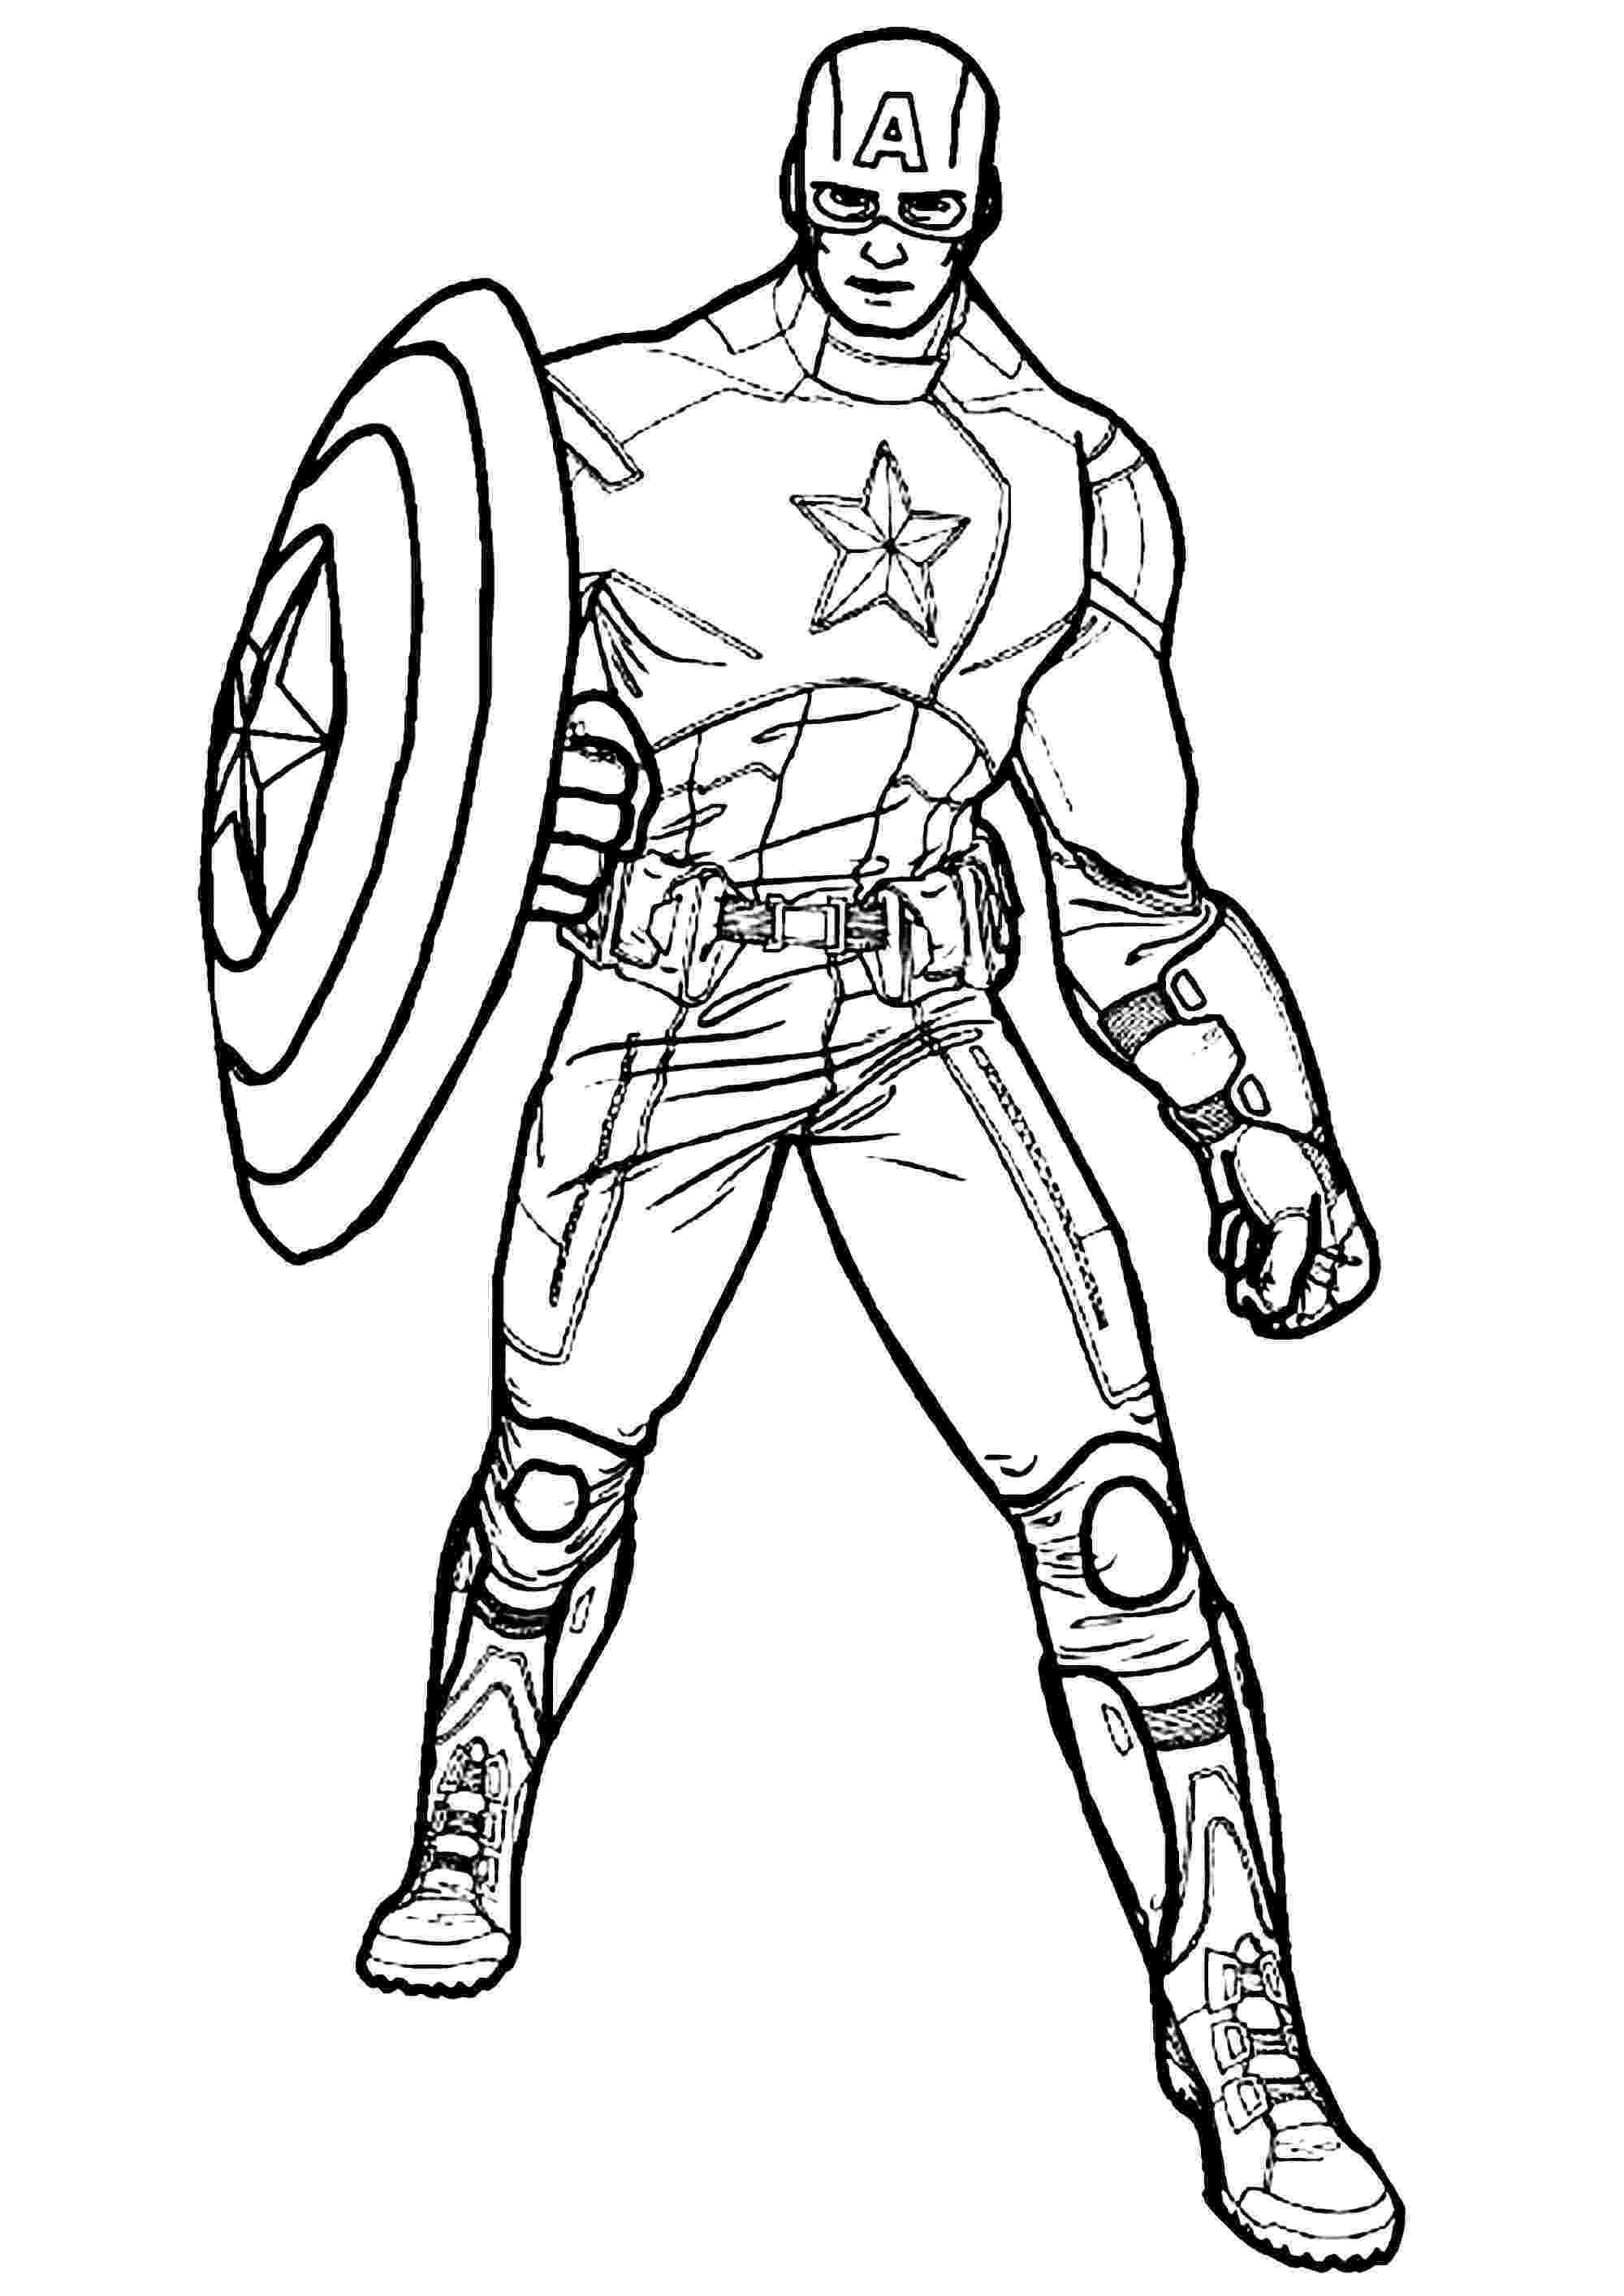 coloring pictures of captain america captain america coloring pages to download and print for free pictures coloring captain of america